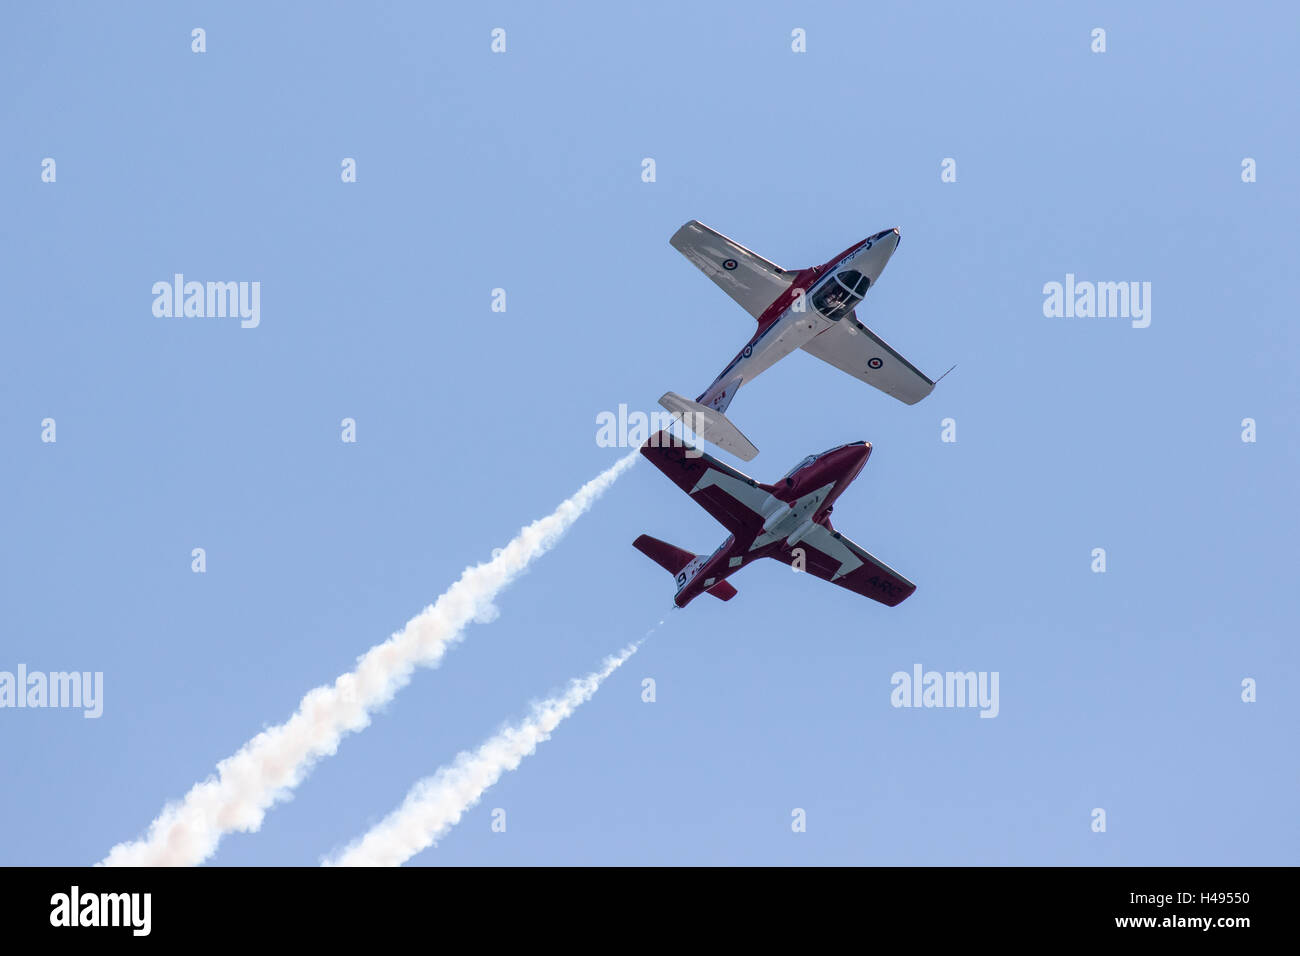 Two Canadian Forces Snowbirds Flying in a Classic Two-Plane Formation Stock Photo